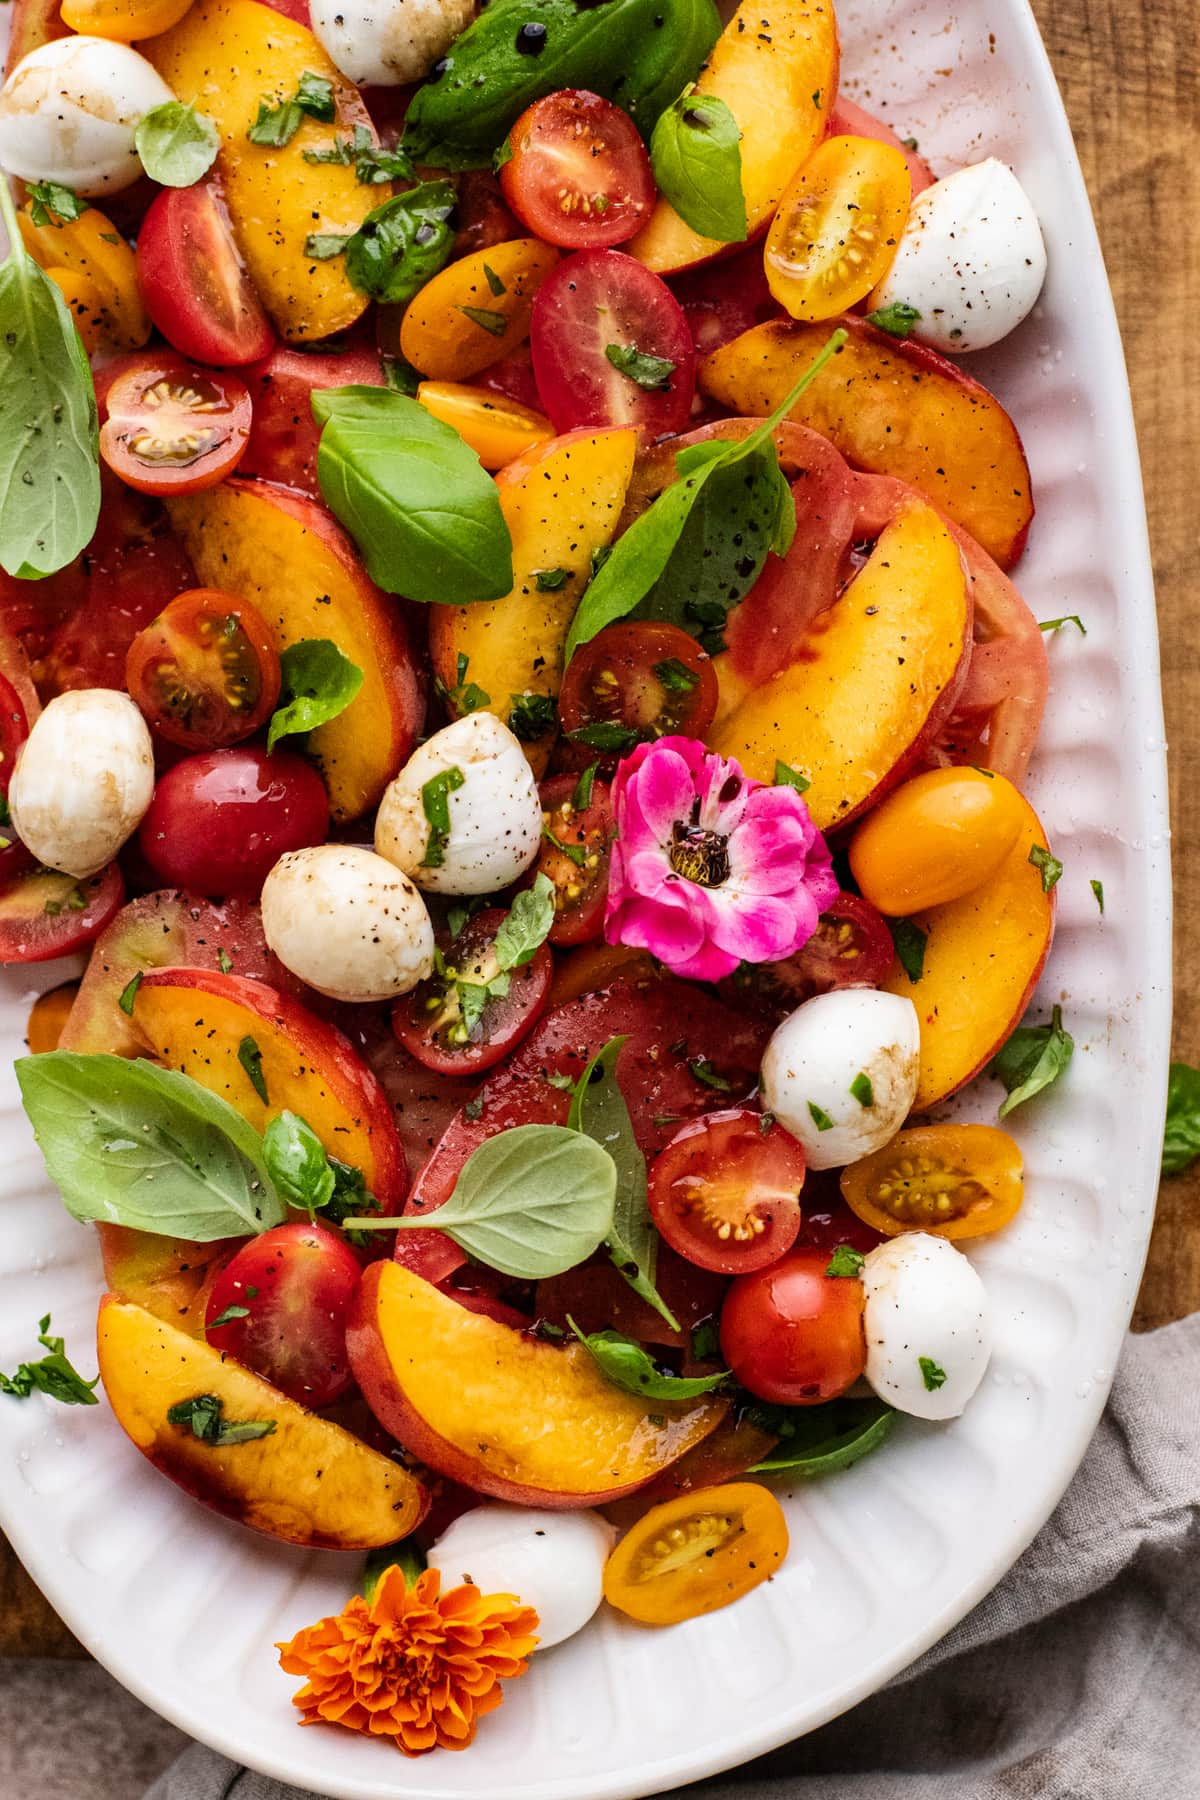 A close up of peaches in a caprese salad with basil leaves on a white plate with gray napkin next to it.